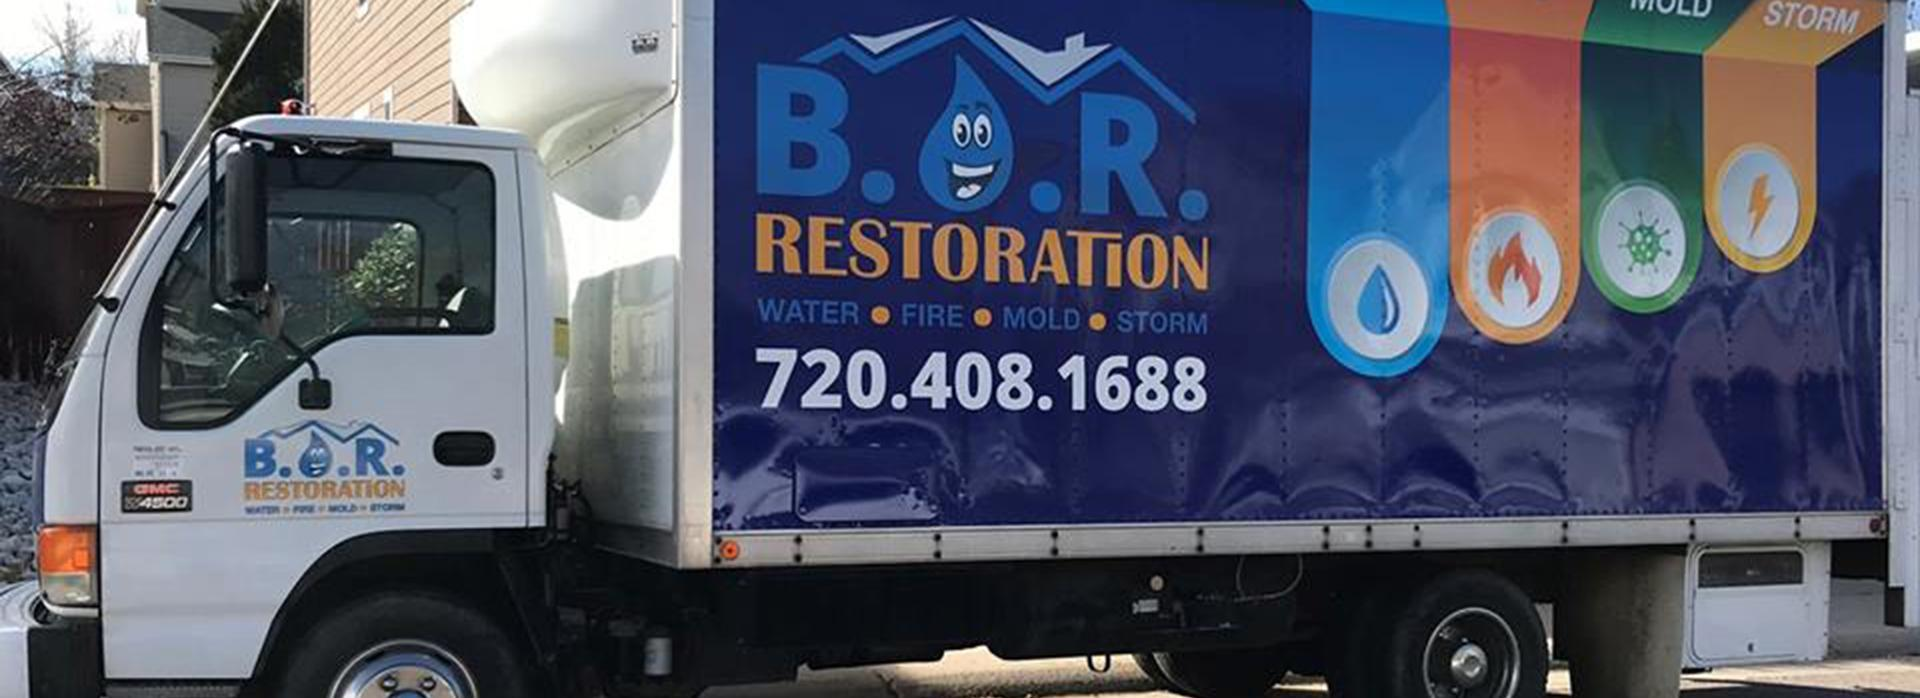 truck-bor-restoration-franchise